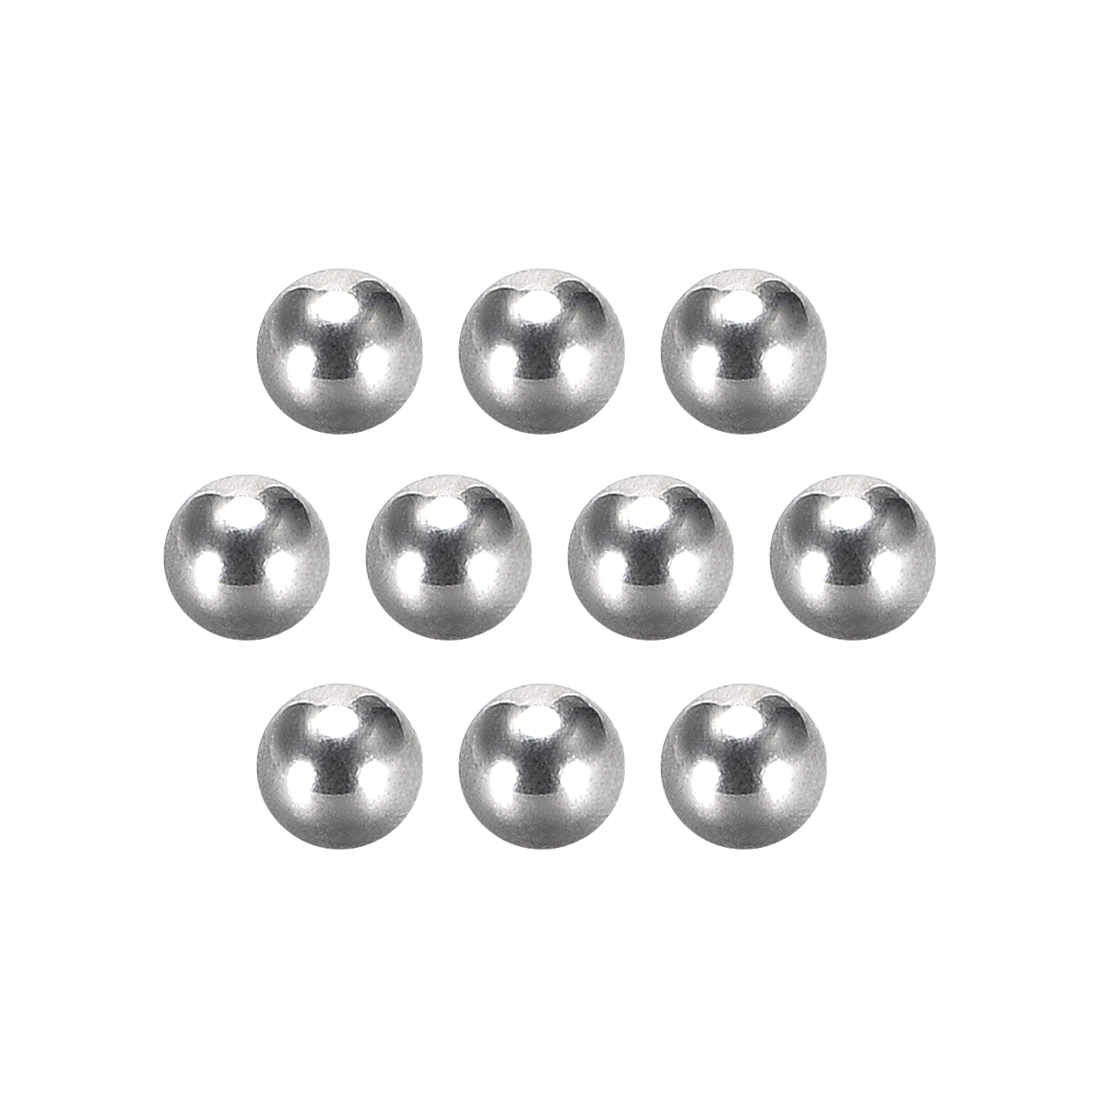 Precision 304 Stainless Steel Bearing Balls 1/8 Inch G5 10pcs